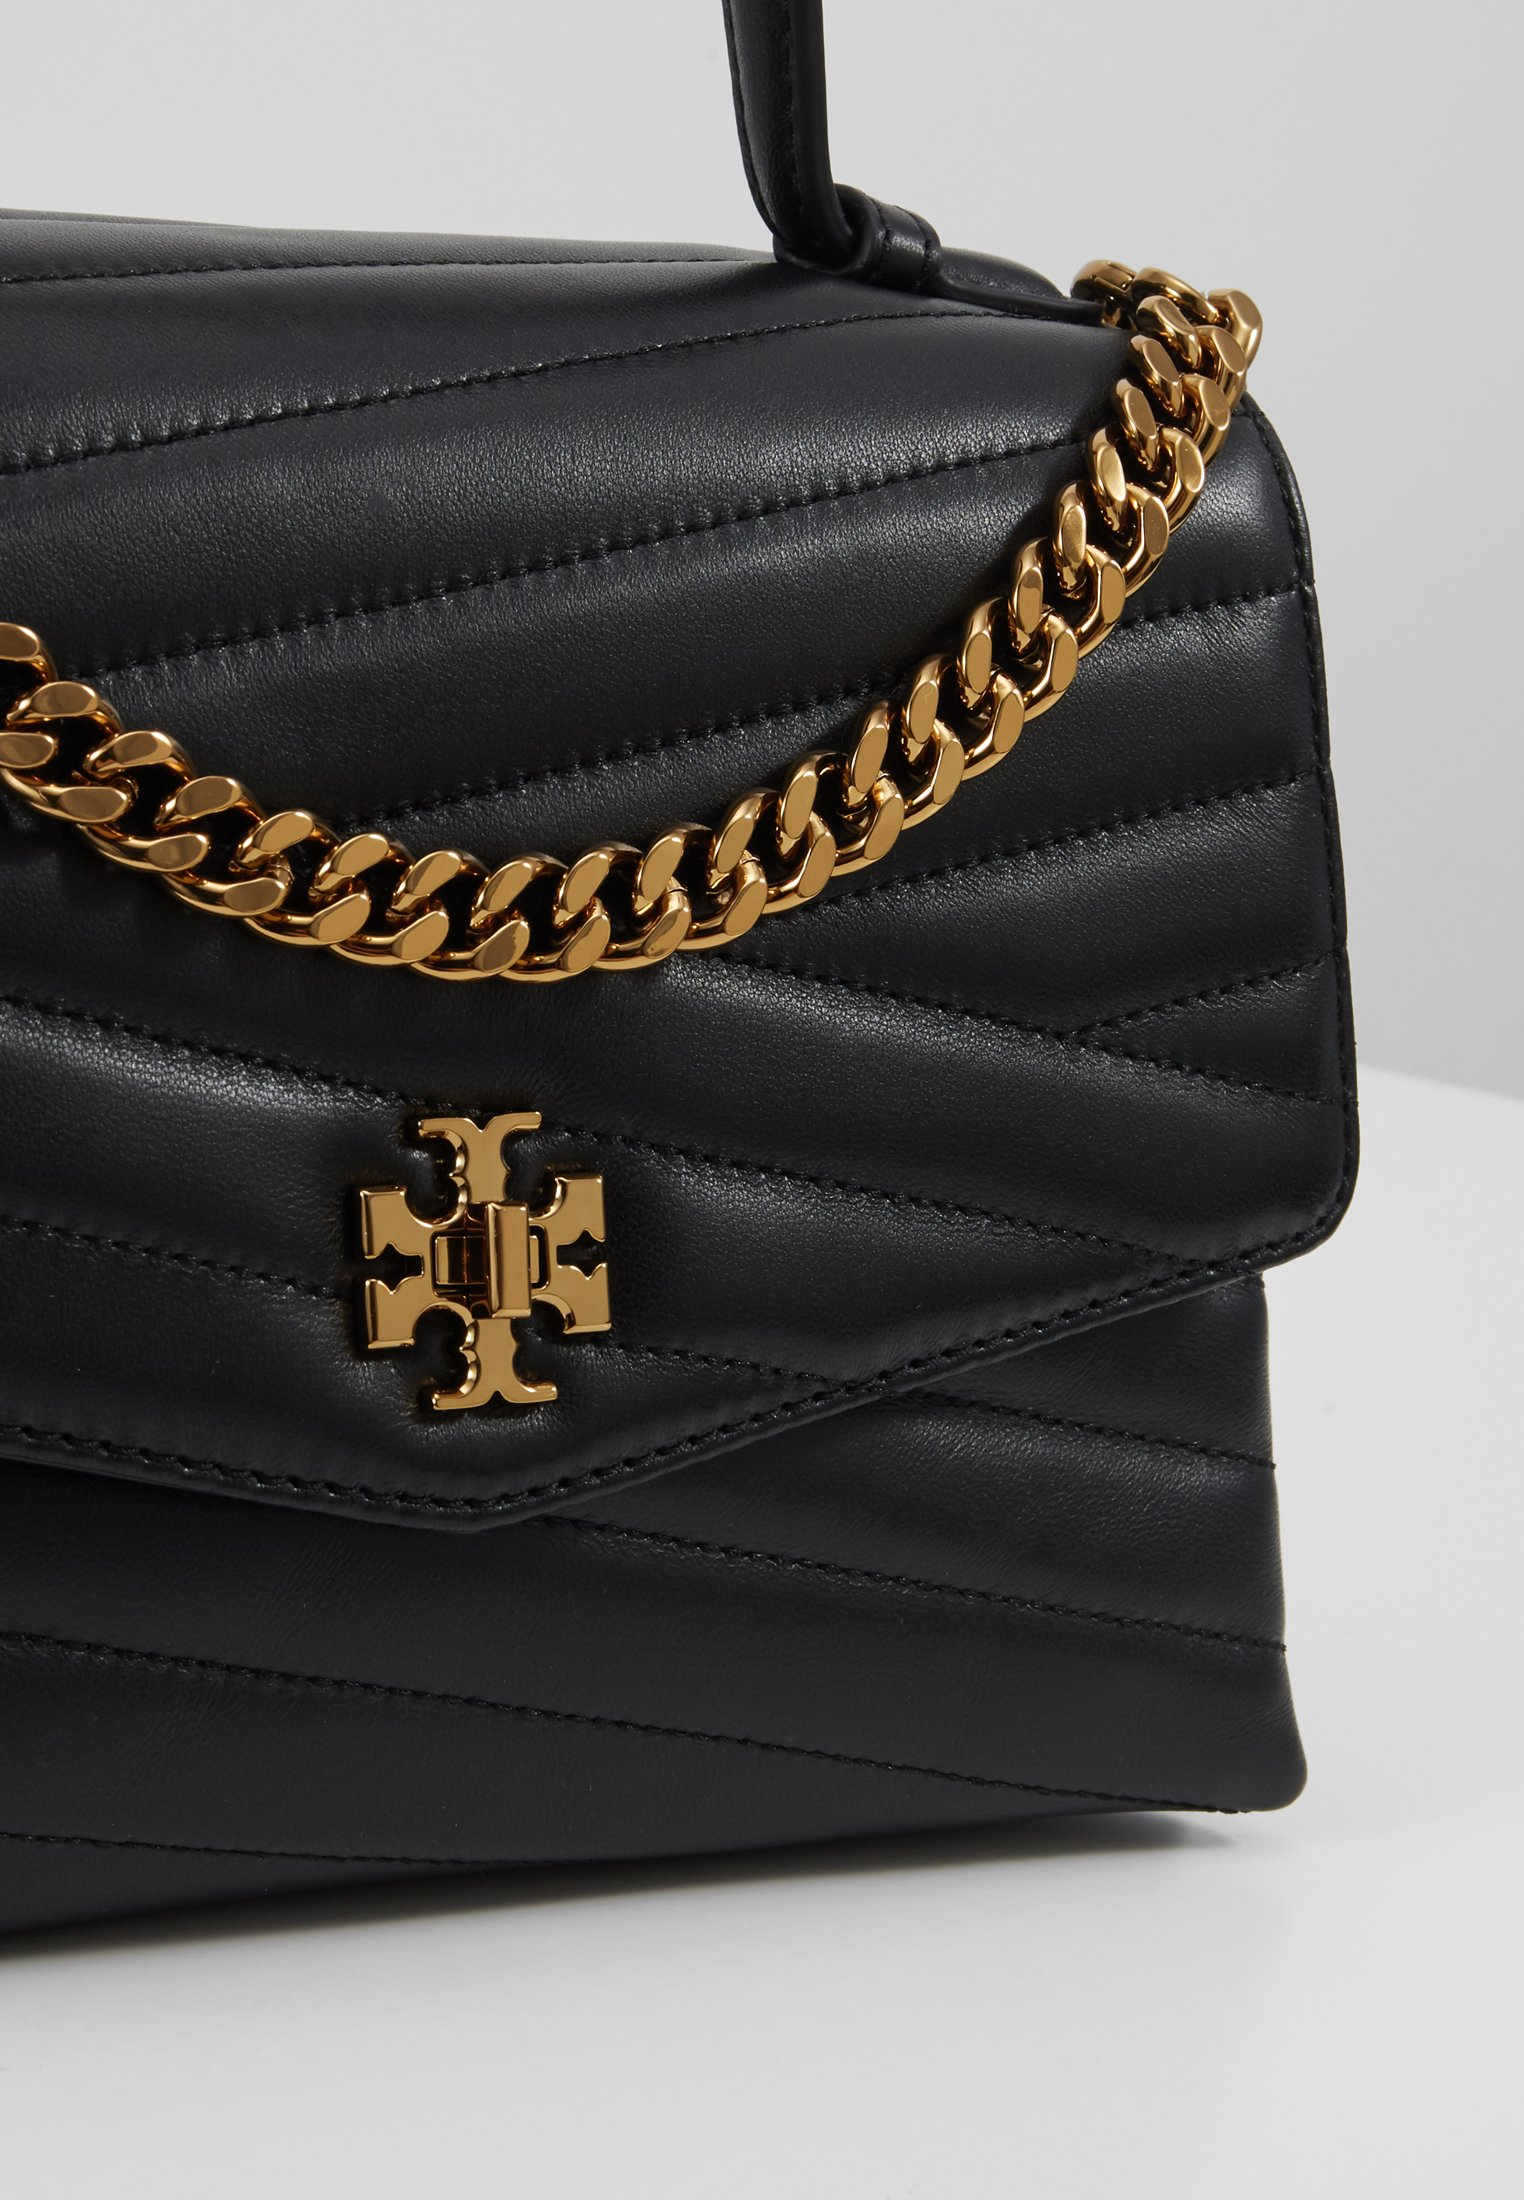 Tory Burch Kira Chevron Top Handle Satchel - Handtasche Black